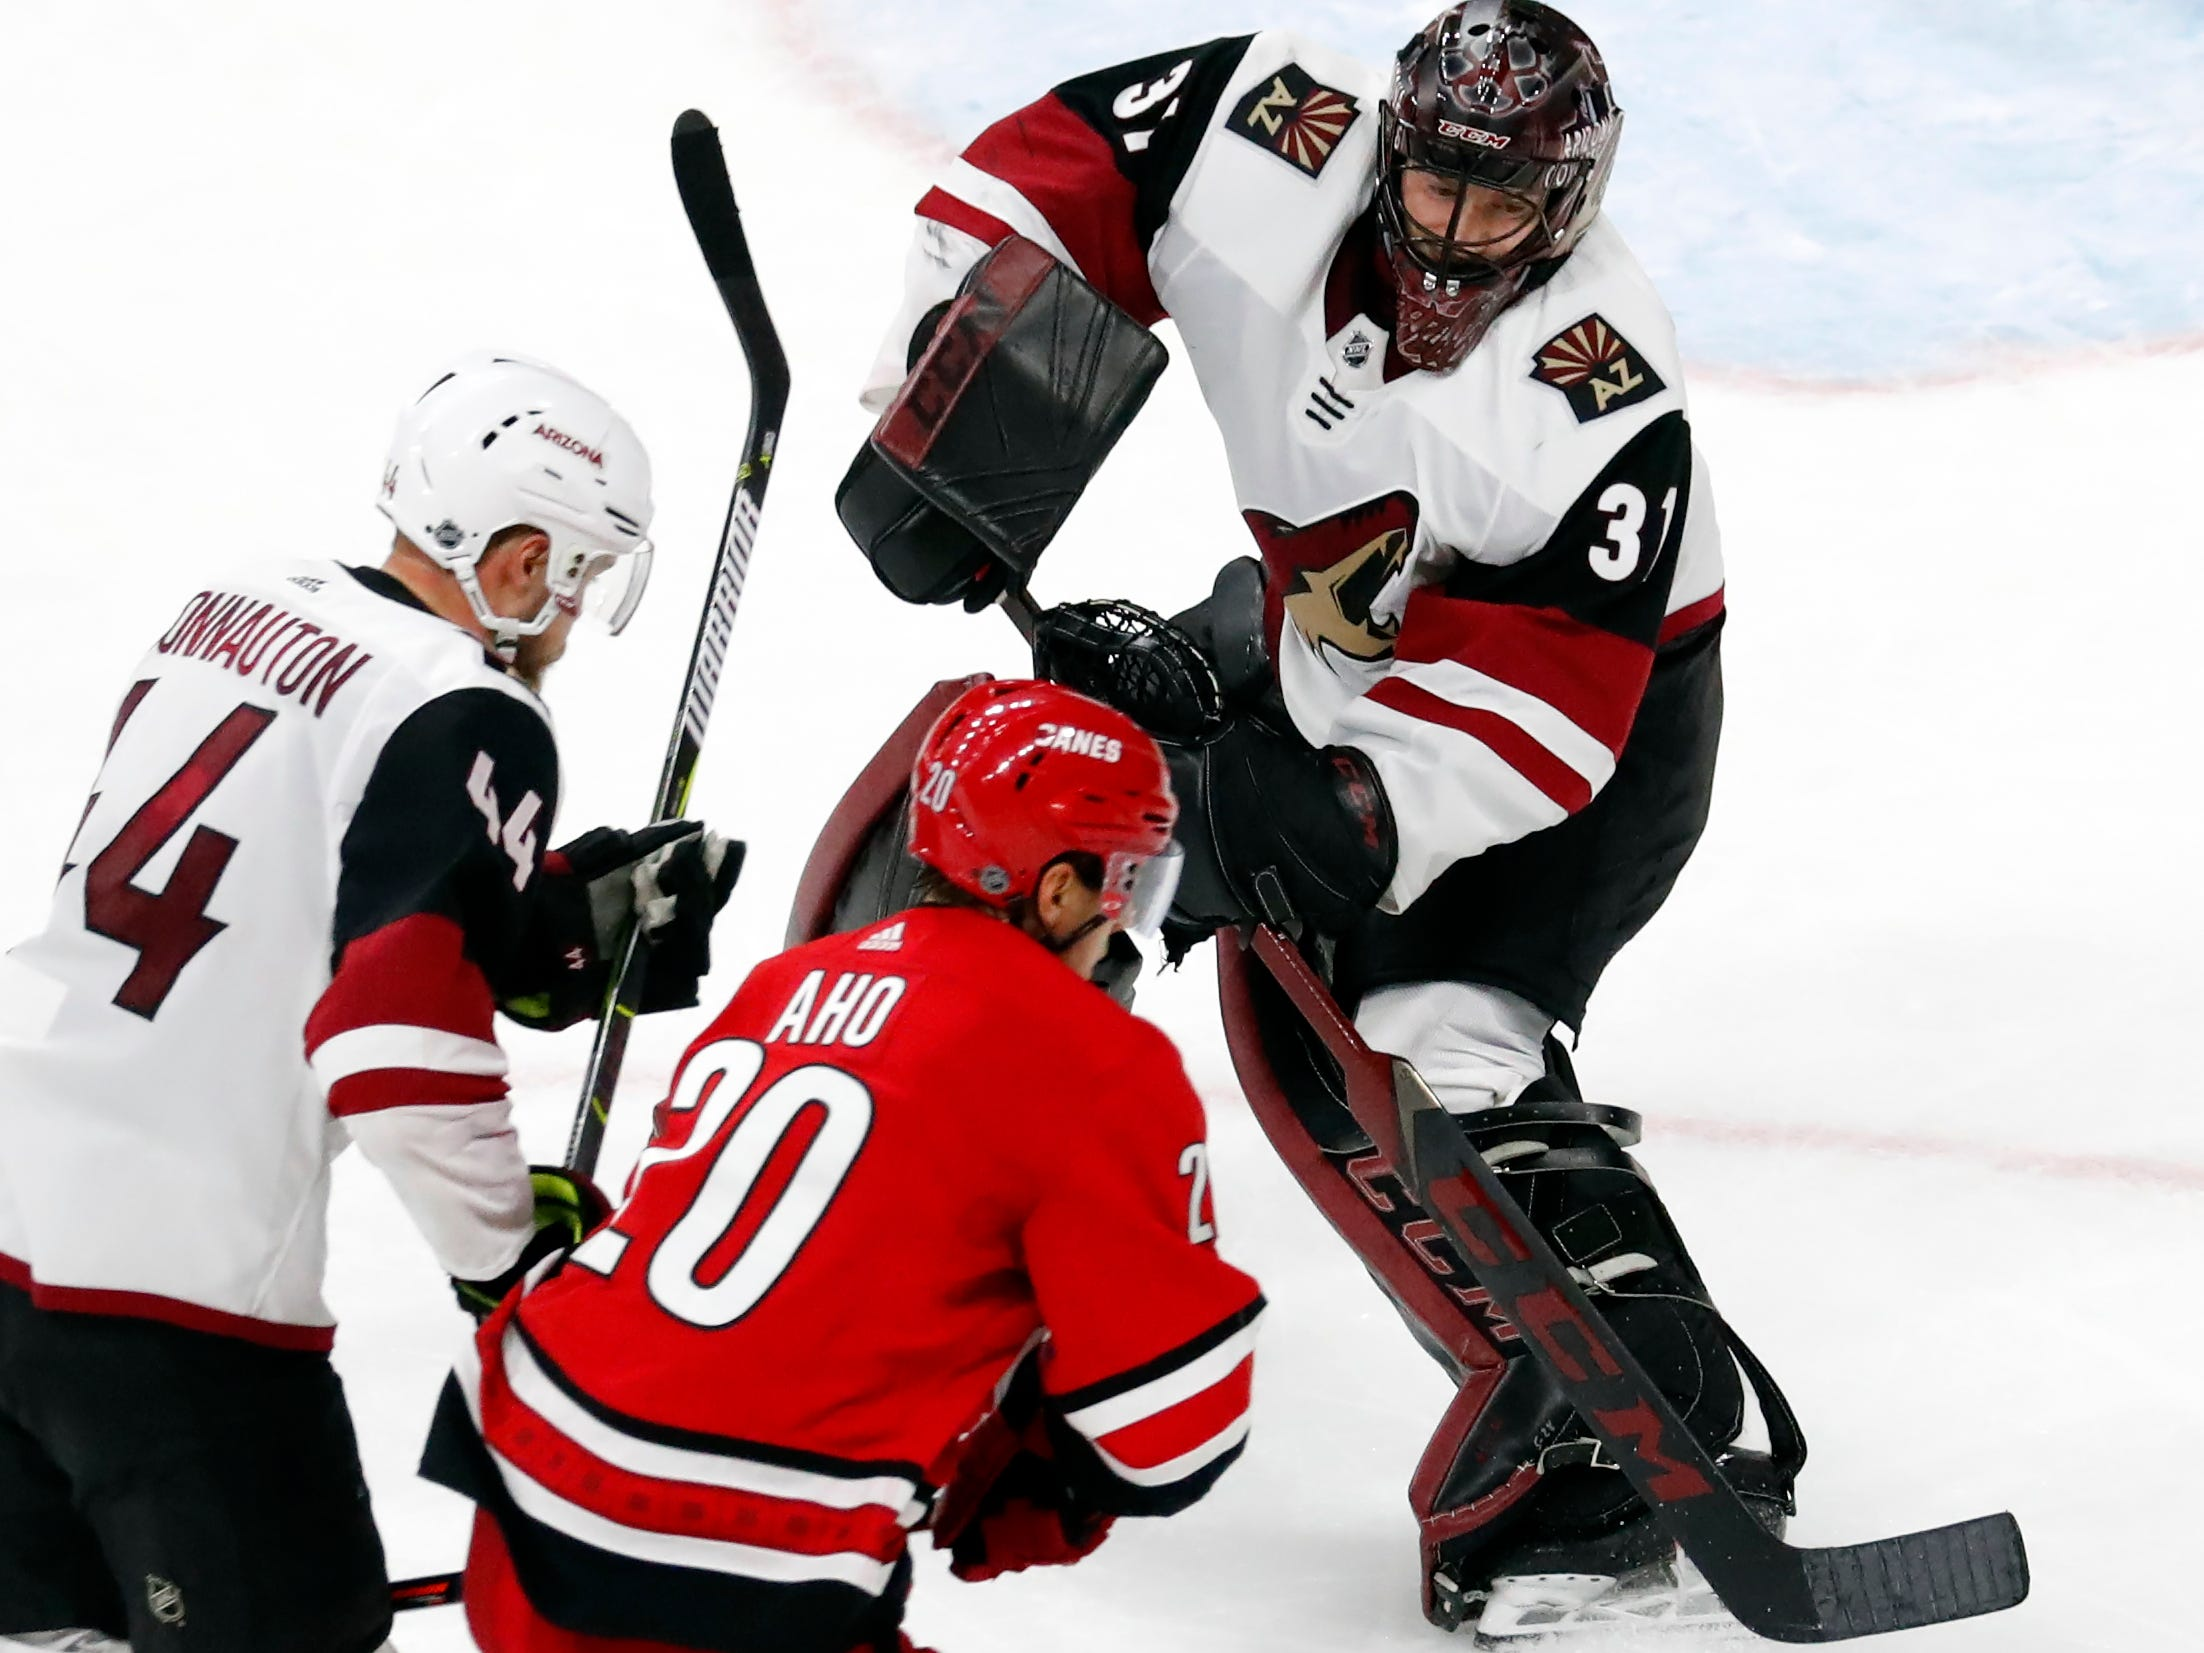 Arizona Coyotes goaltender Adin Hill (31) clears the puck in front of a charging Carolina Hurricanes' Sebastian Aho (20) and Coyotes Kevin Connauton (44) during the third period of an NHL hockey game, Sunday, Dec. 16, 2018, in Raleigh, N.C.